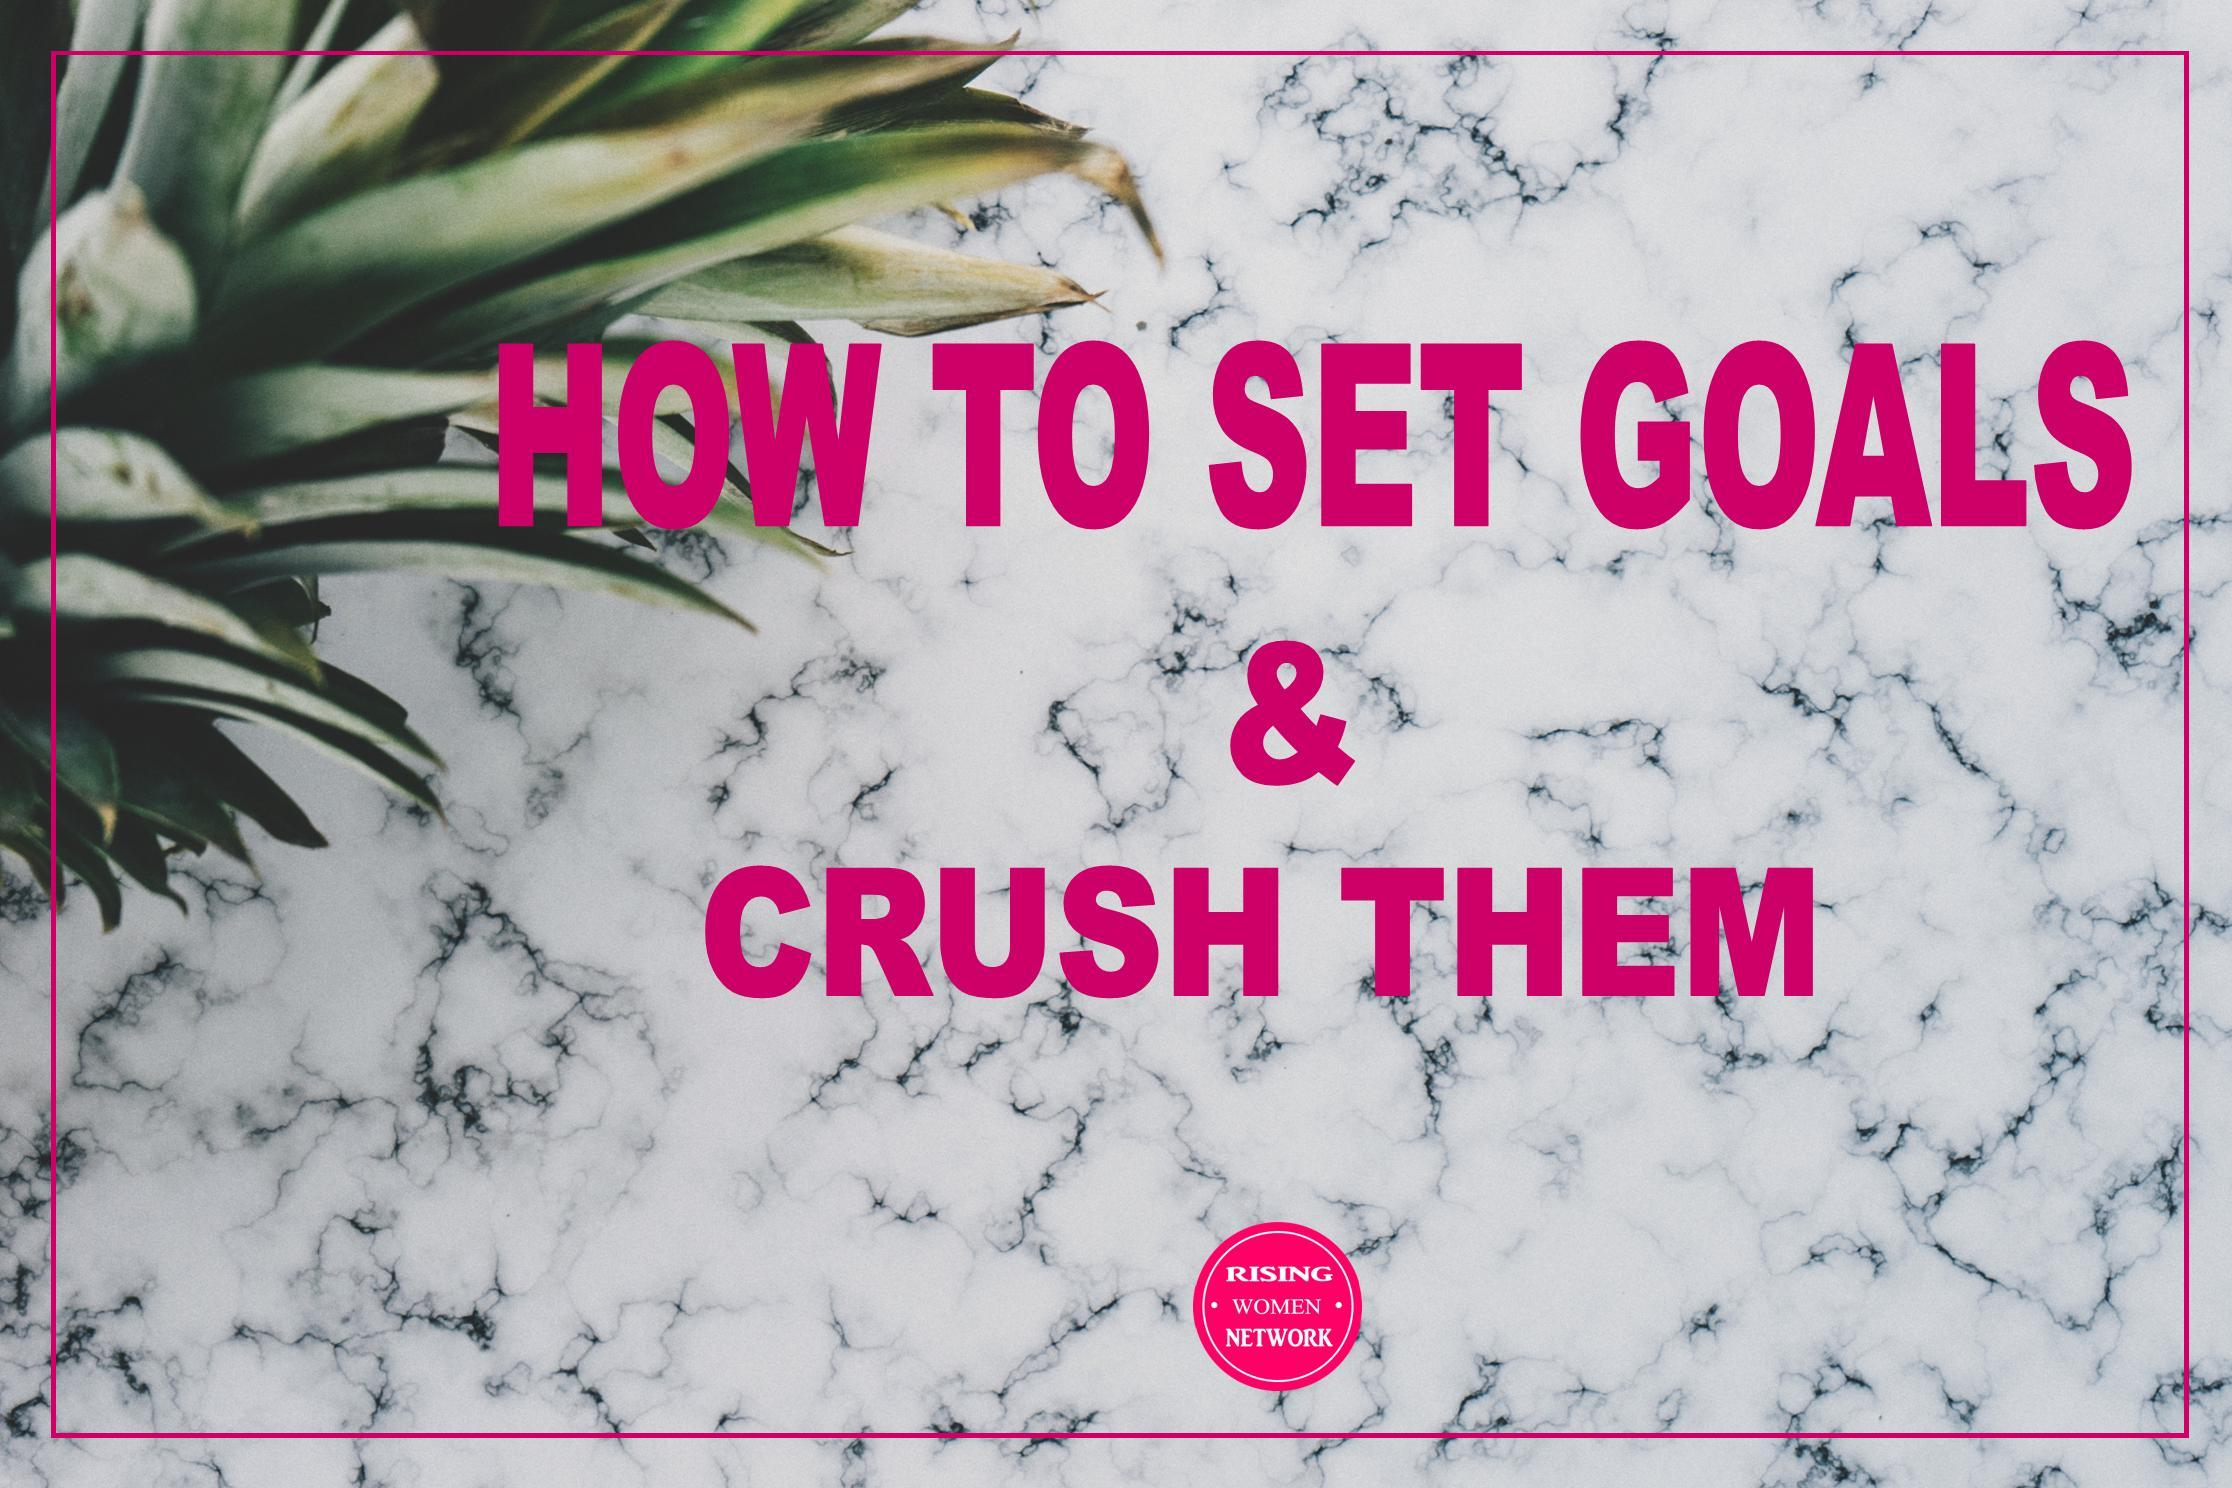 HOW TO SET GOALS & CRUSH THEM